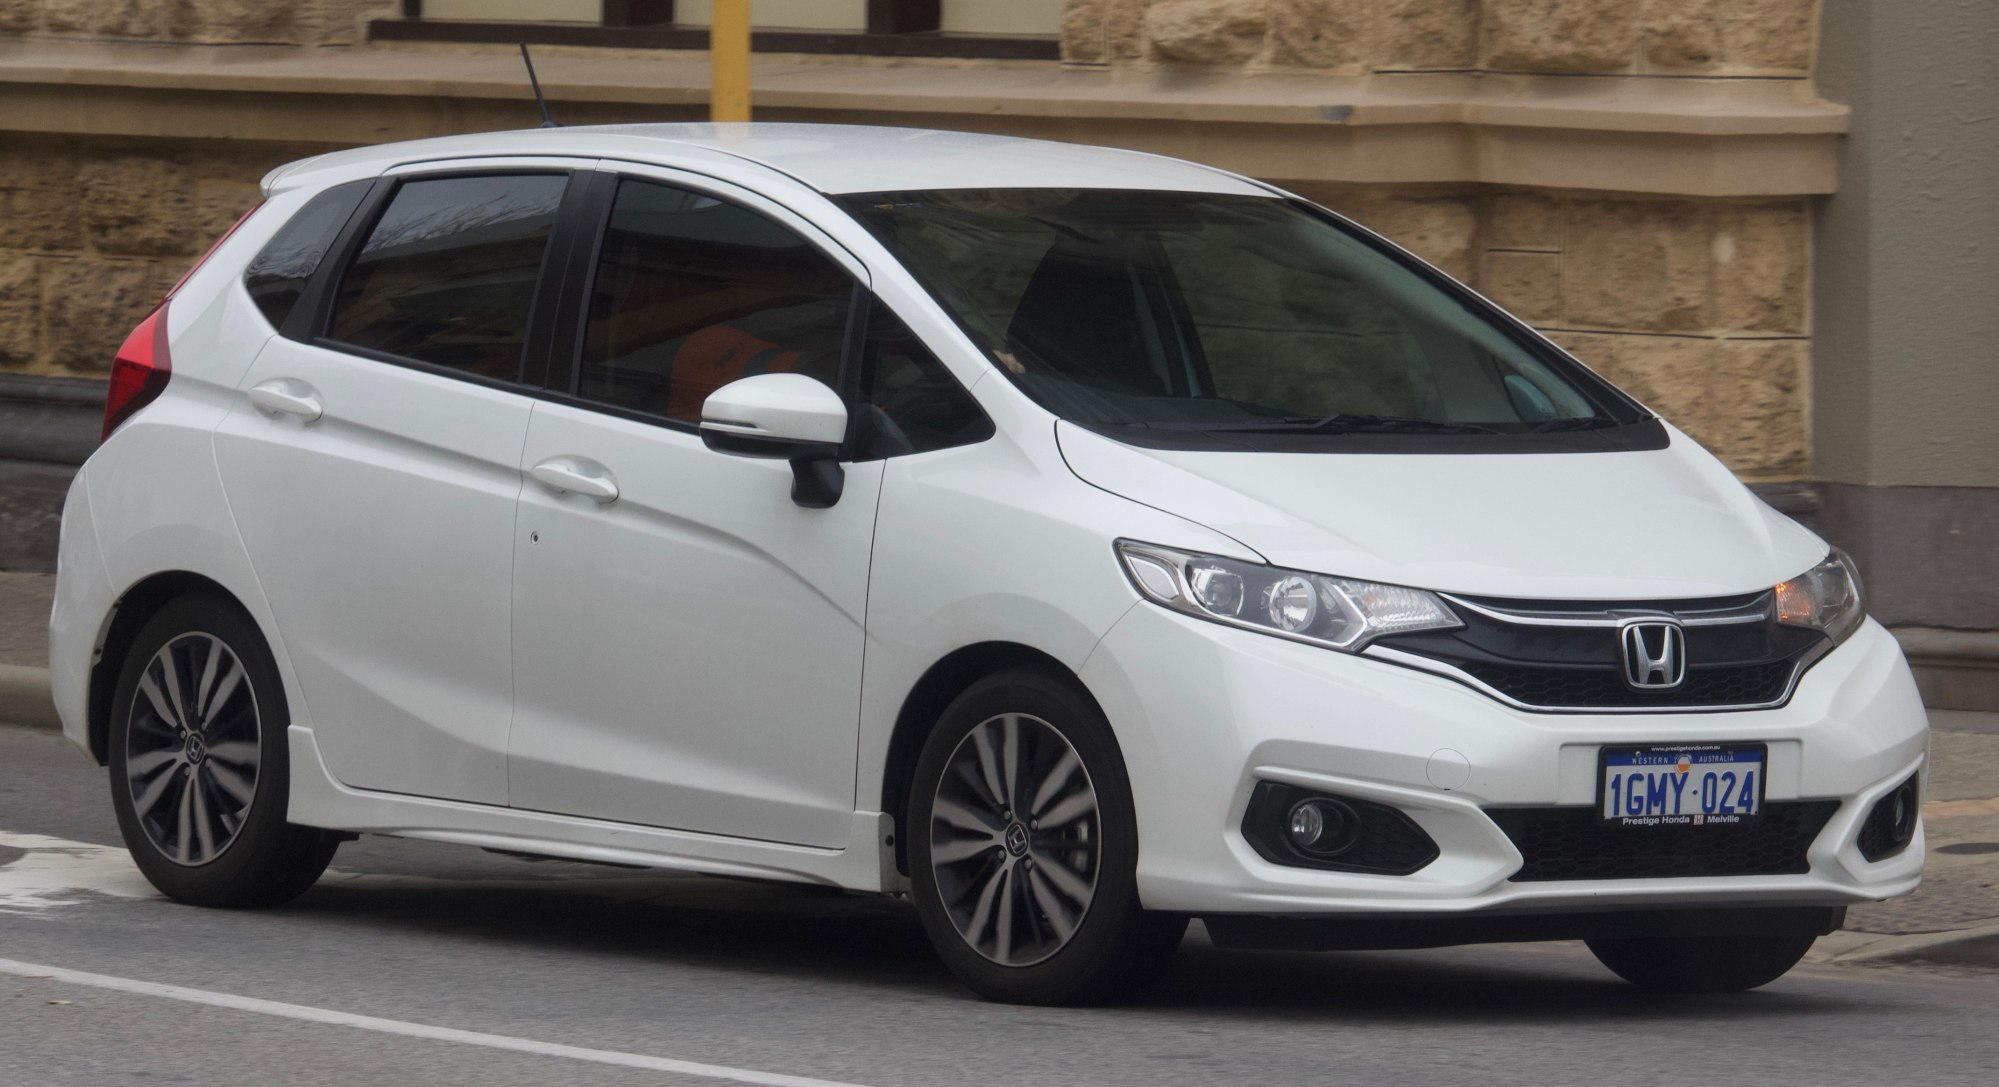 hight resolution of honda fit the complete information and online sale with free shipping order and buy now for the lowest price in the best online store